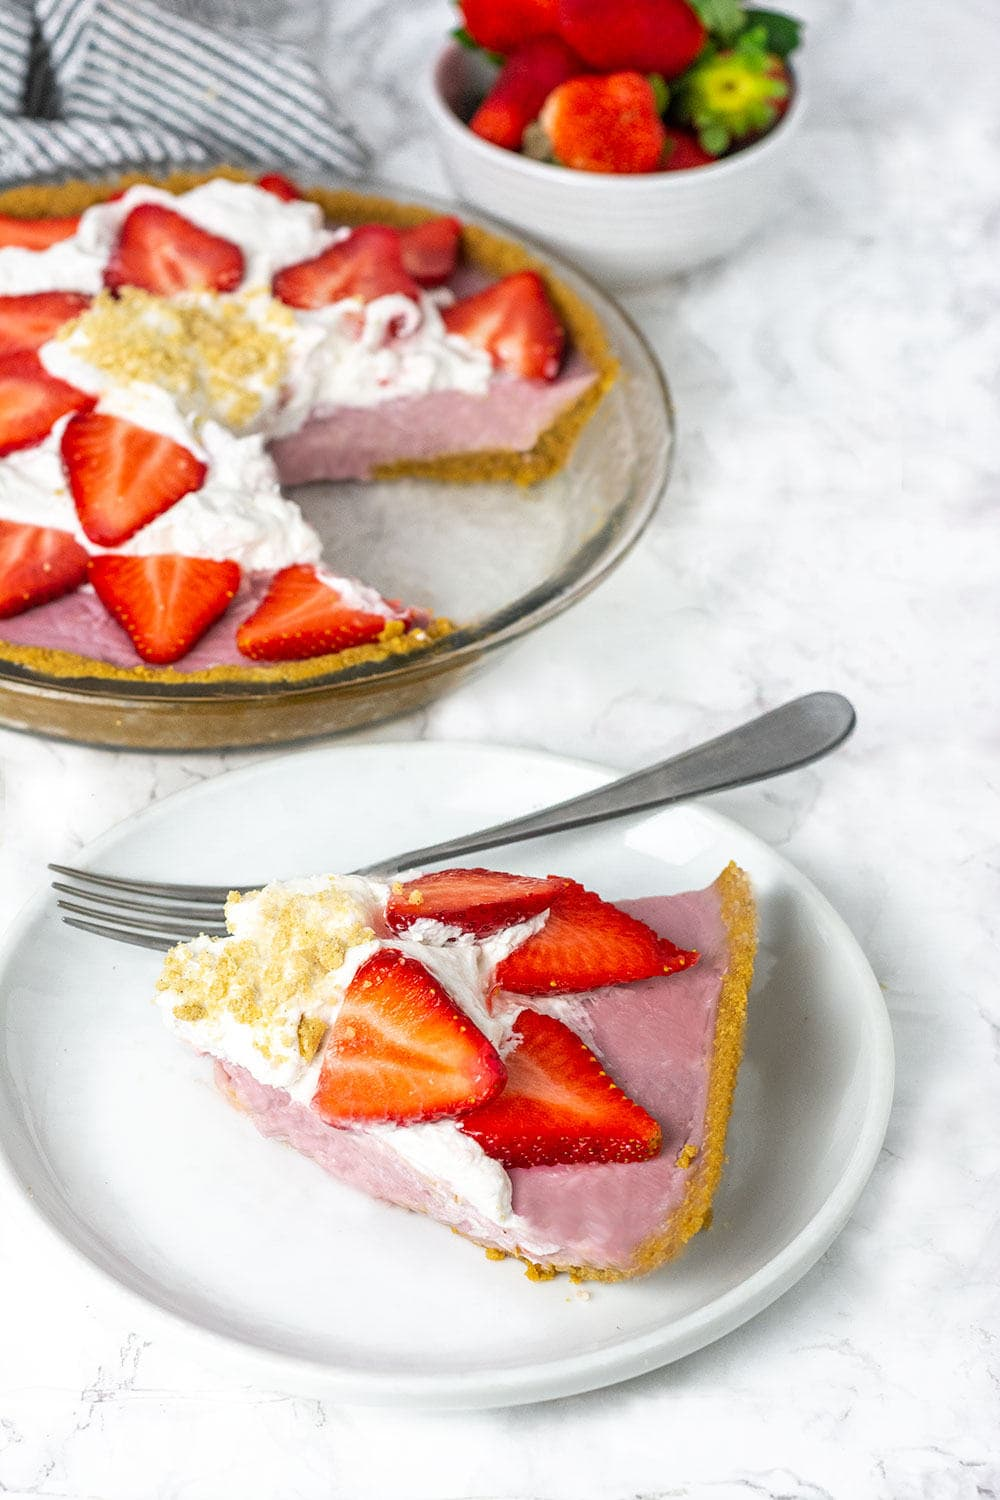 Vegan Strawberry Cream Pie